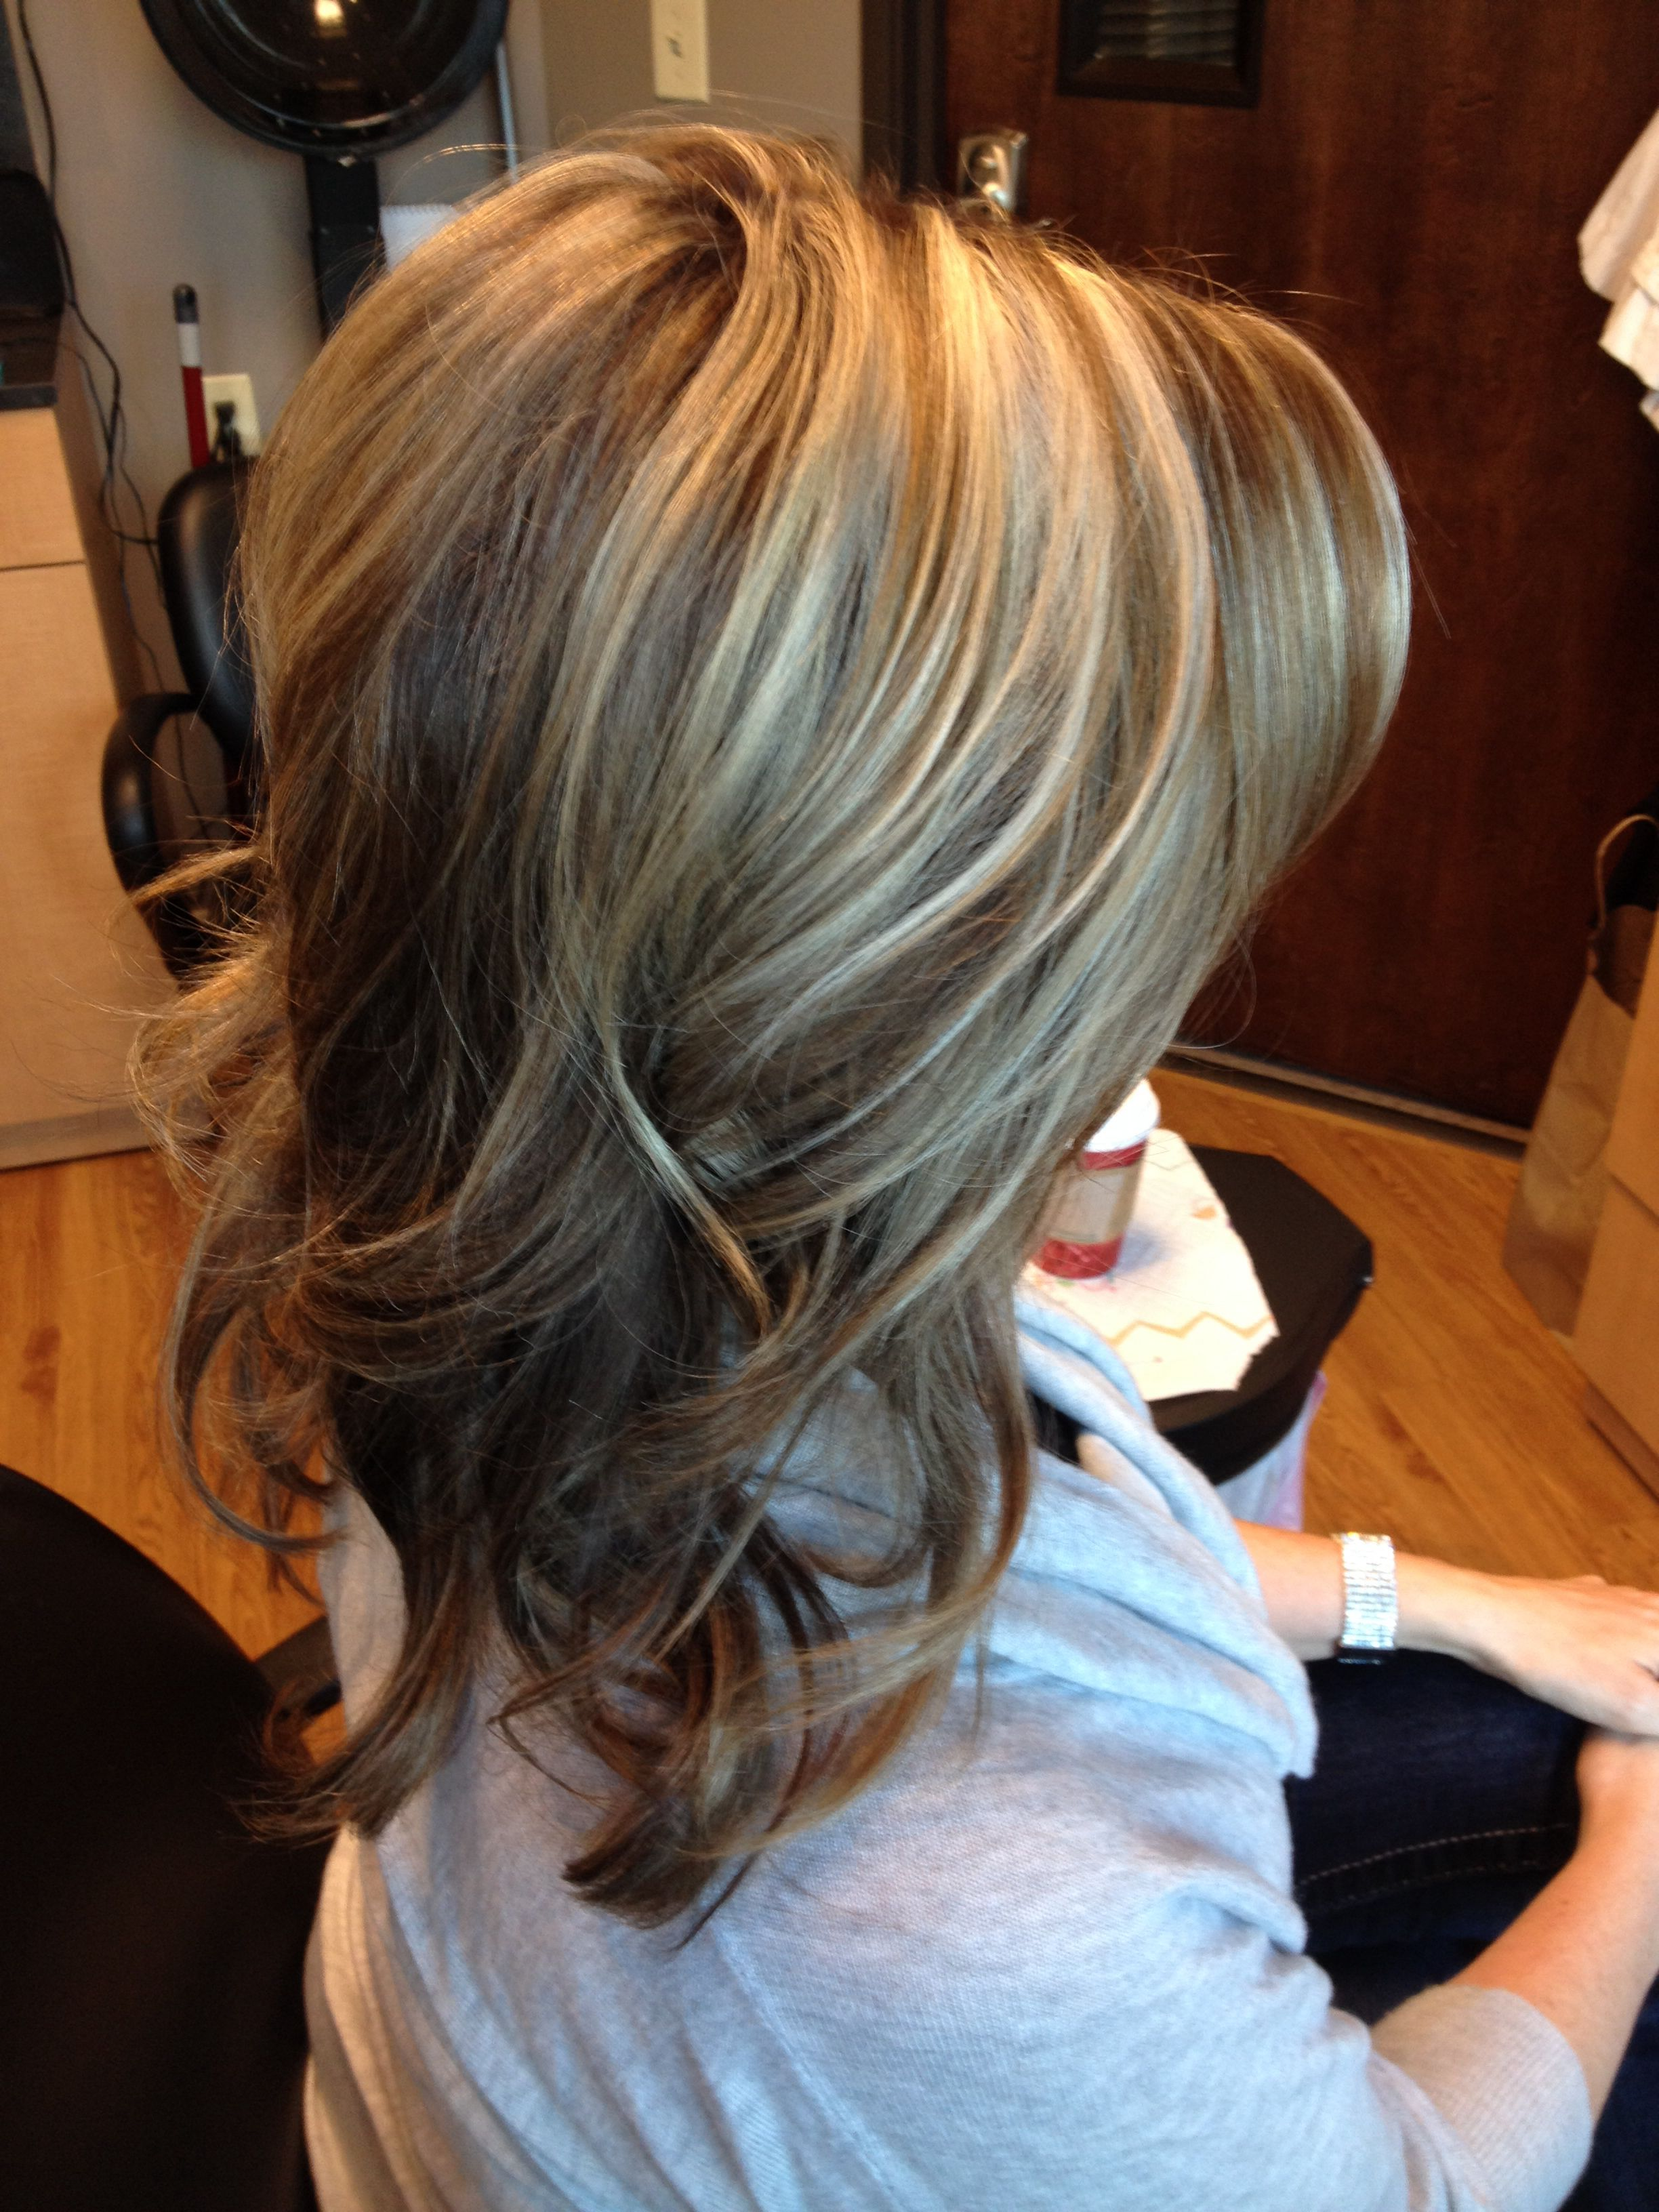 Light Brown Hair And White Blond Highlights With Curls Beauty